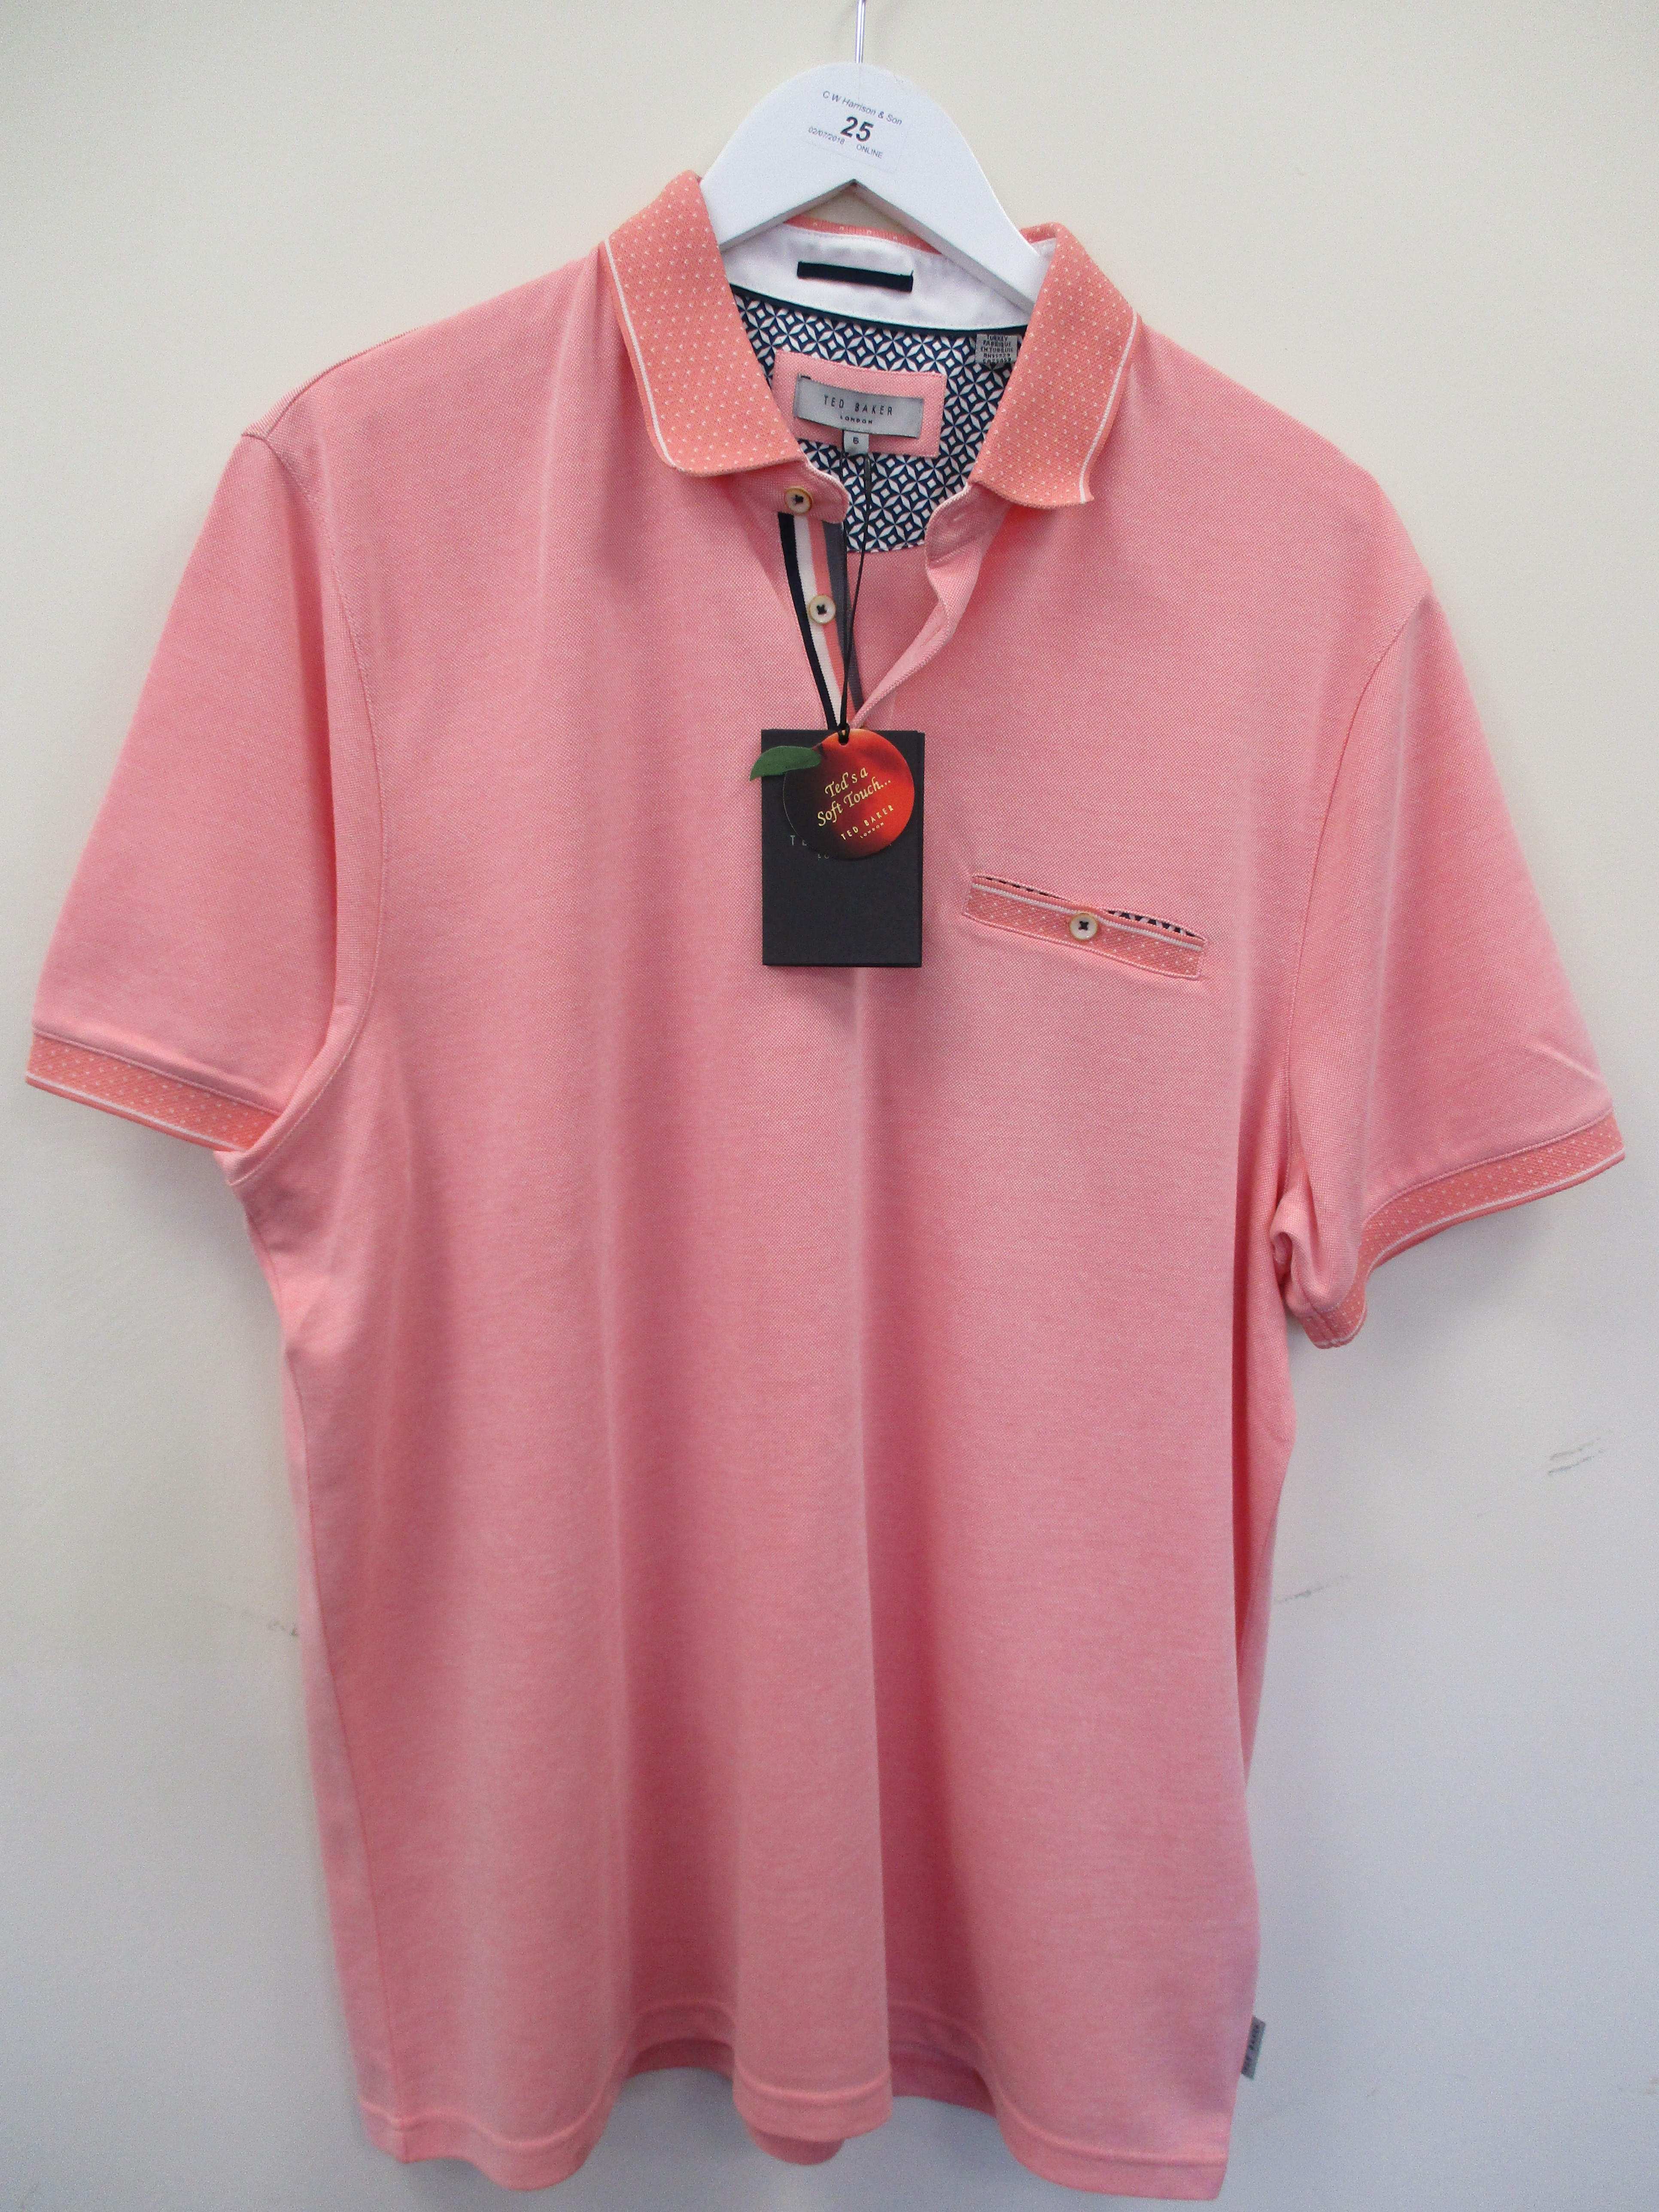 Lot 25 - Ted Baker polo shirt - pale orange - XXL RRP £69